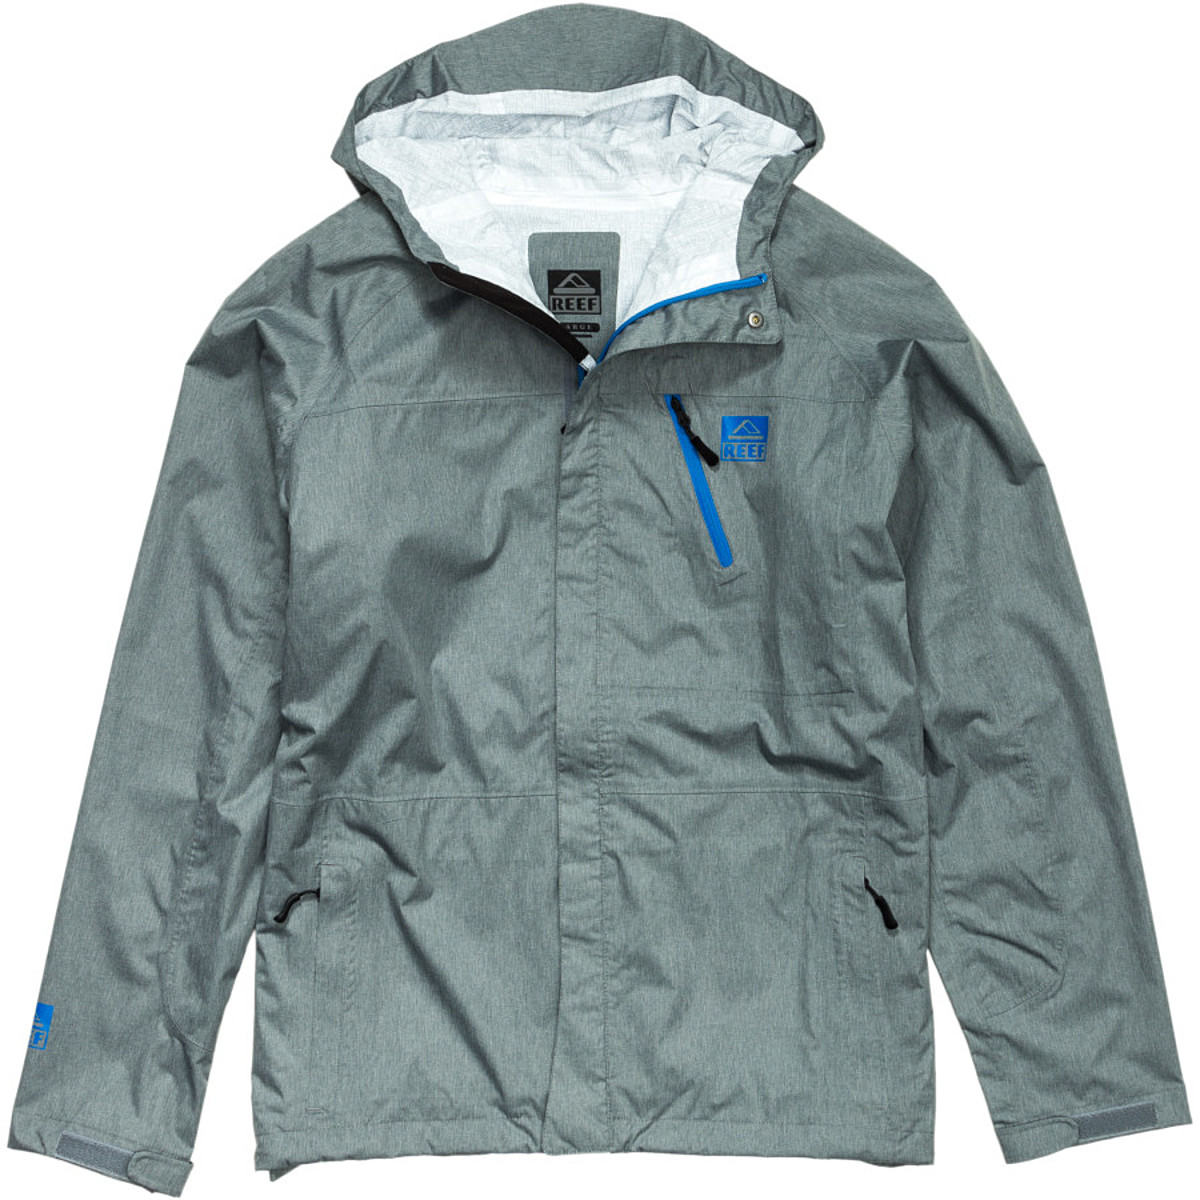 photo of a Reef outdoor clothing product